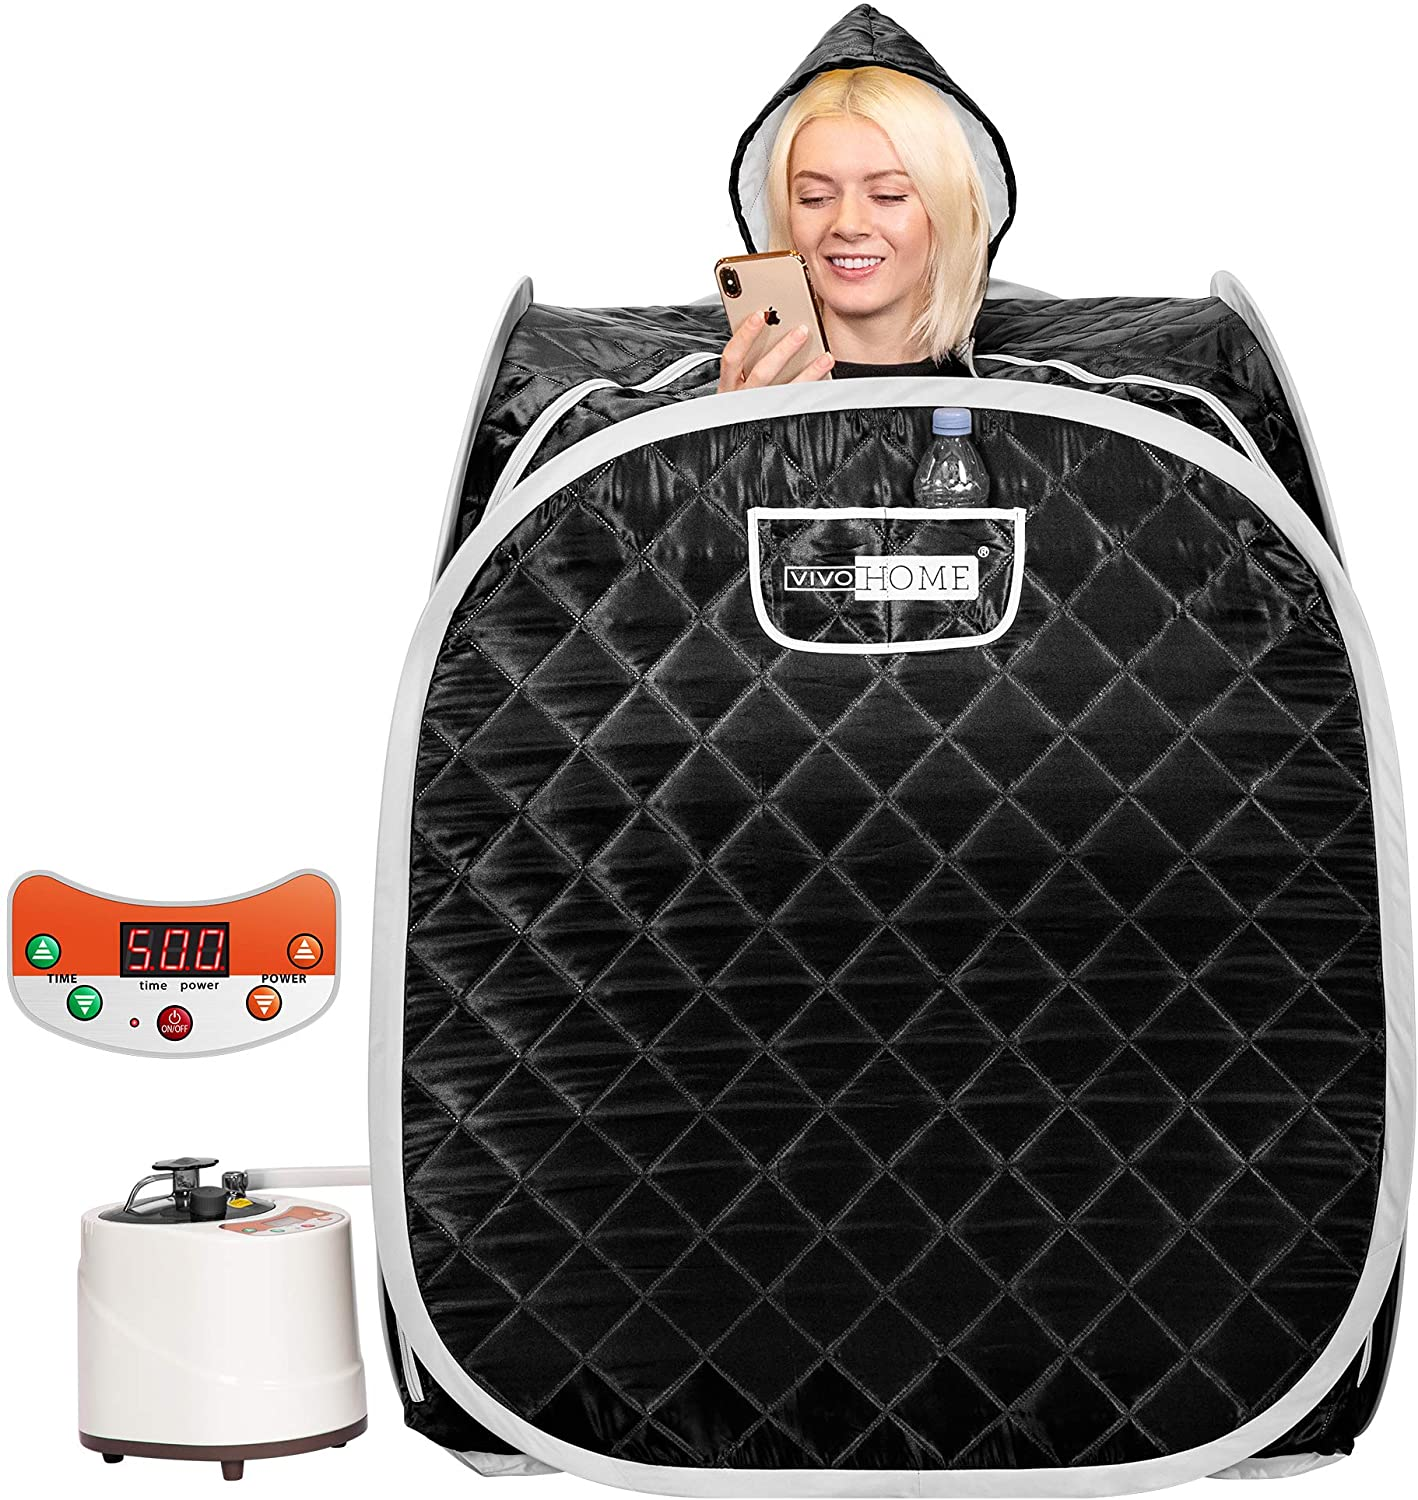 VIVOHOME Portable Personal Steam Sauna Spa with 2L 900 Watt Steamer, 9 Temperature Levels, 99 Minutes Timer, Remote Control, Foldable Chair, Carrying Bag Folding Home Therapeutic Sauna Spa Tent Black